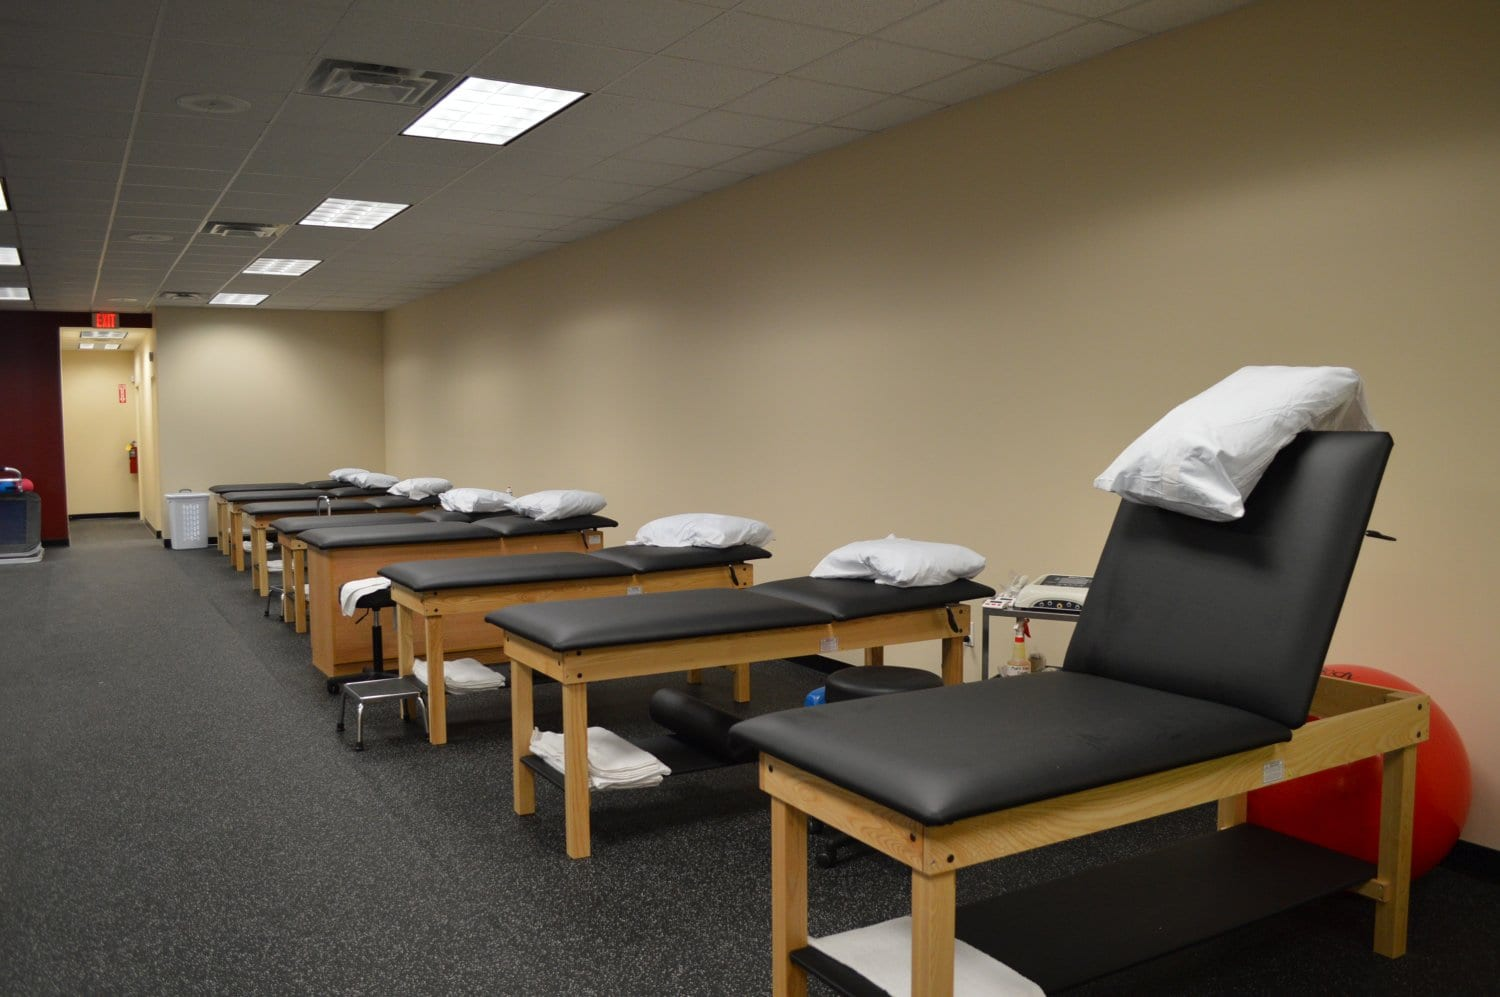 Here is an image of the stretch beds we use for physical therapy at our clinic in Baldwin, New York.